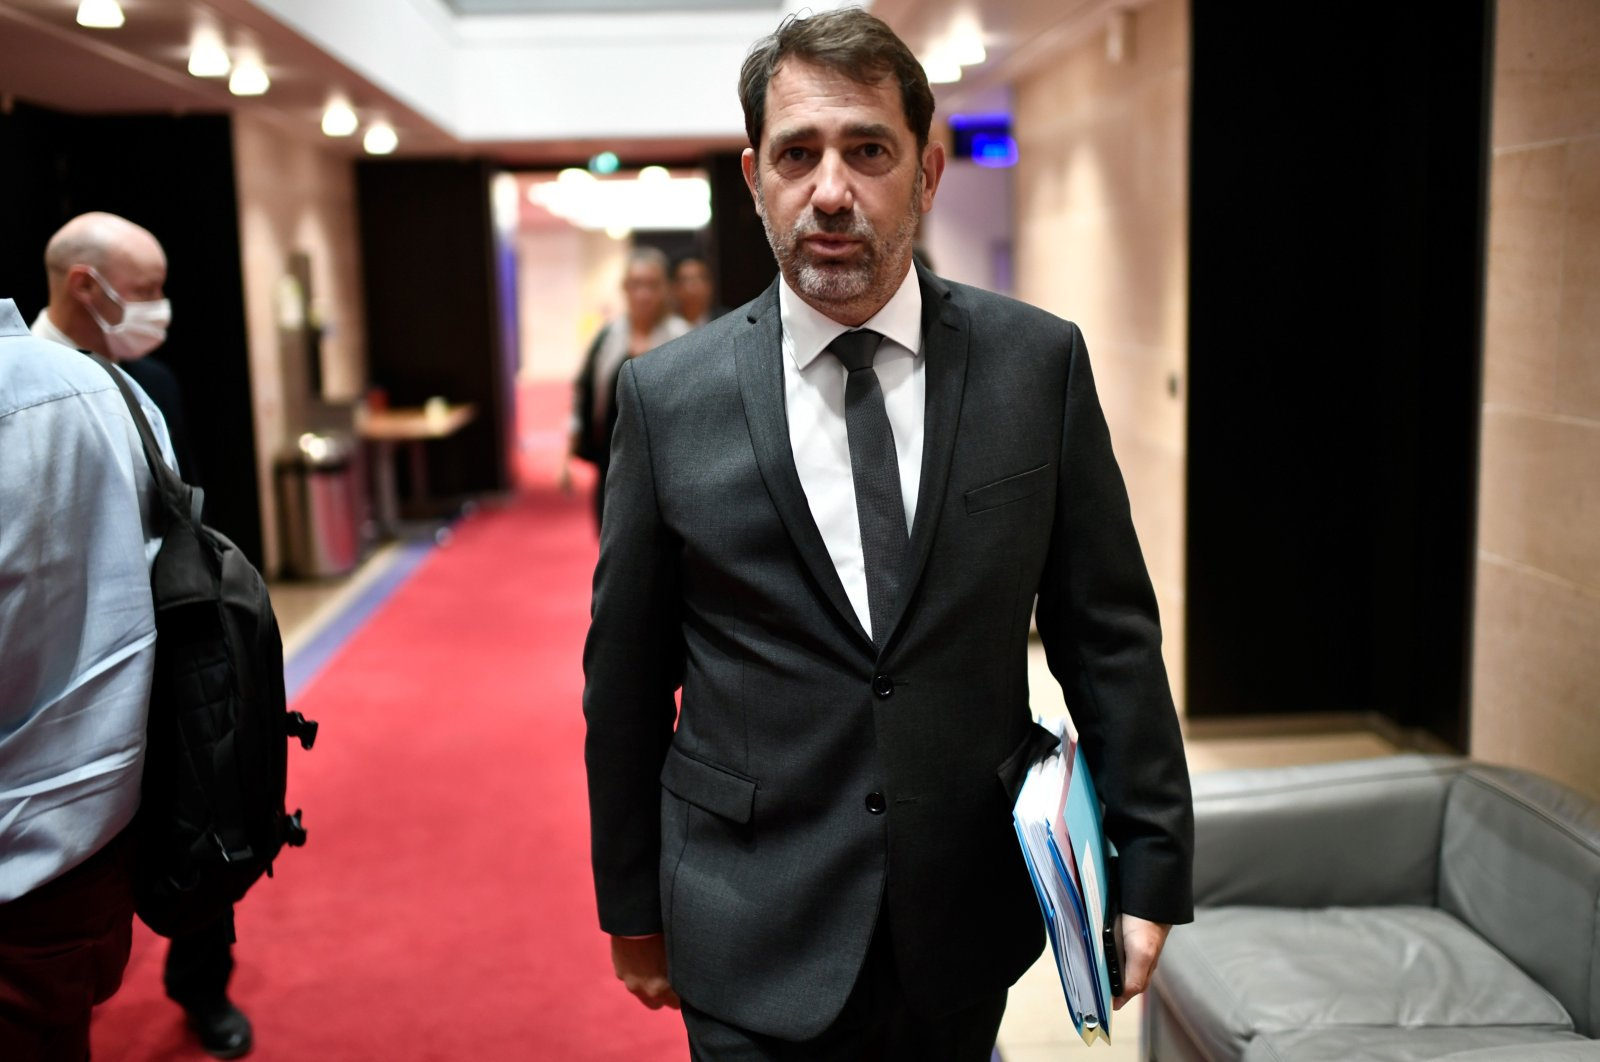 Former French Interior Minister Christophe Castaner arrives for a hearing by the Assembly's committee of inquiry on the independence of the judiciary power in France, at the French National Assembly, in Paris, July 2, 2020. (AFP Photo)